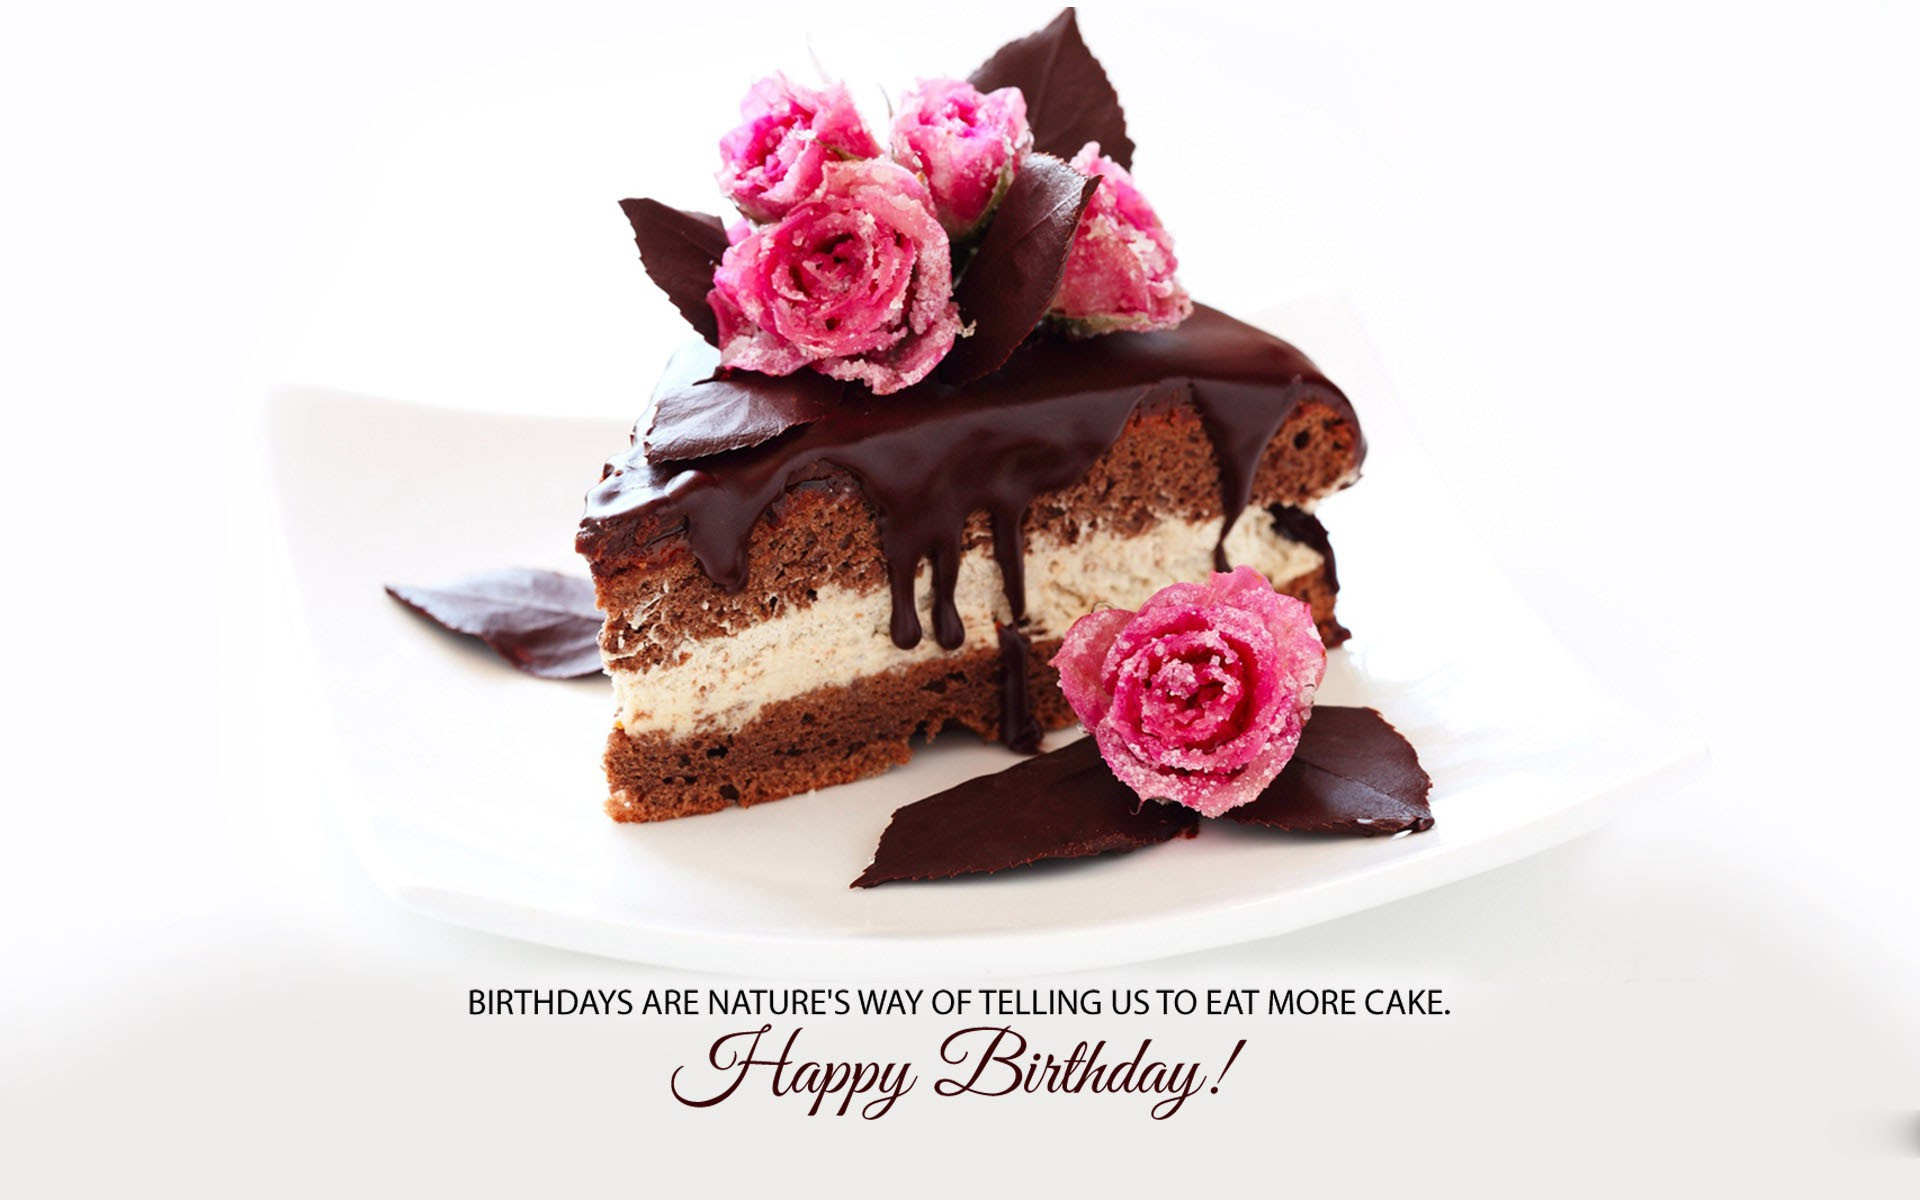 happy birthday latest wallpaper ; Happy-Birthday-Quotes-Cake-with-Images